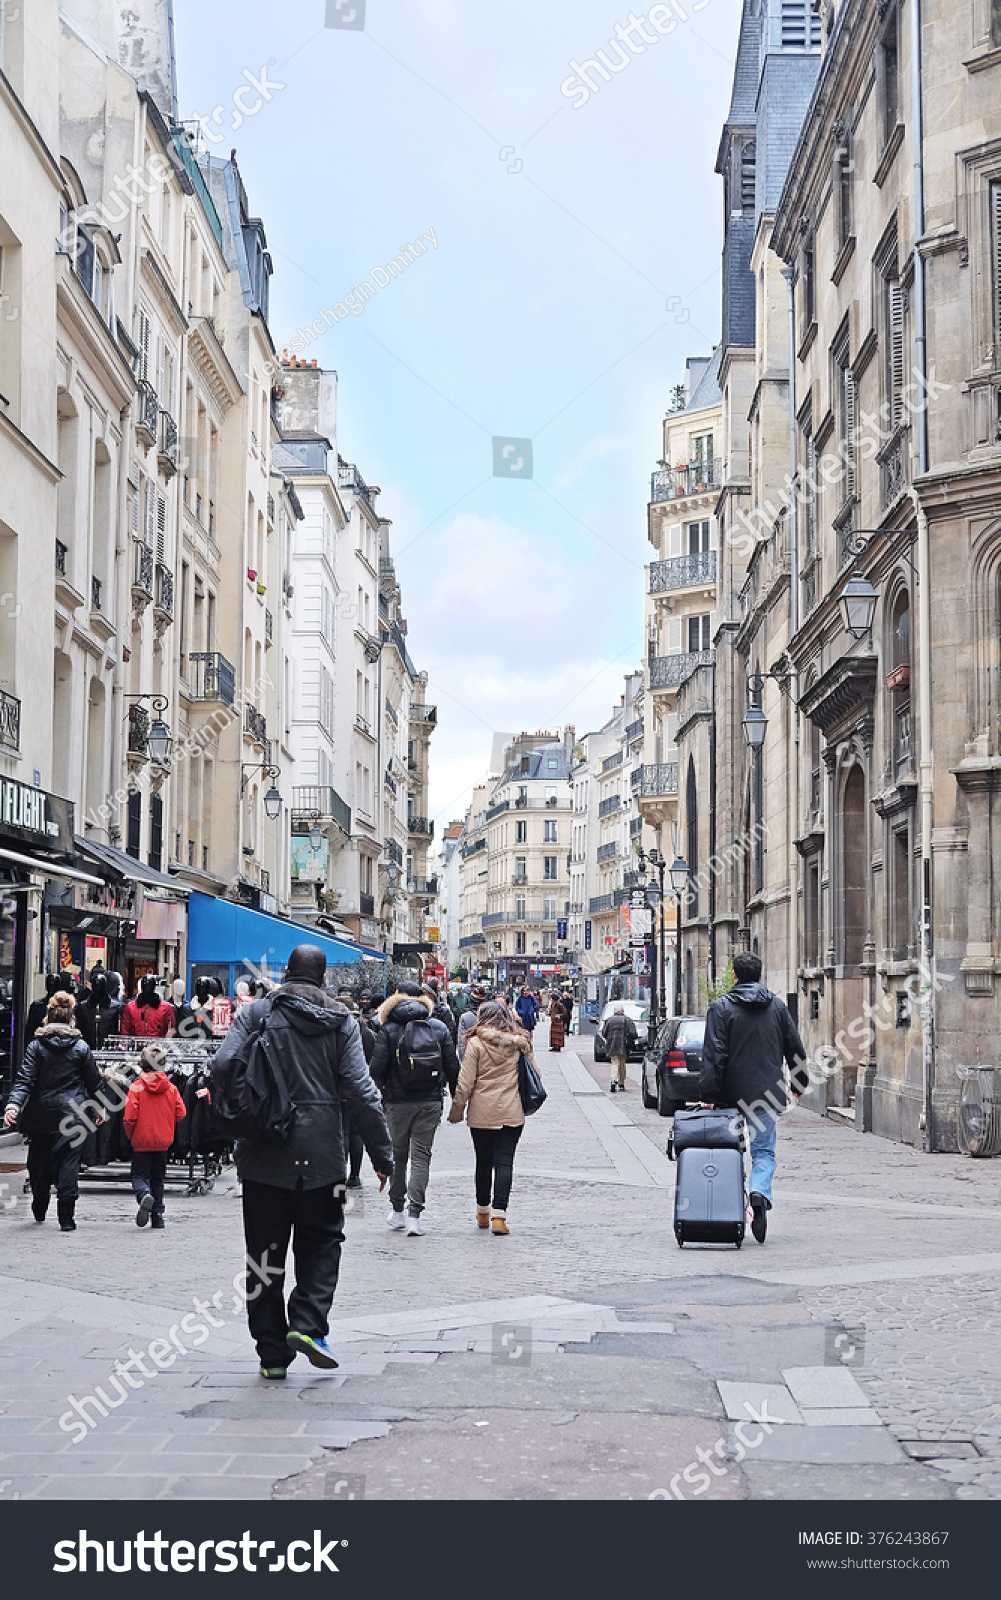 Paris France February 9 2016 view of a street in a center of Paris France